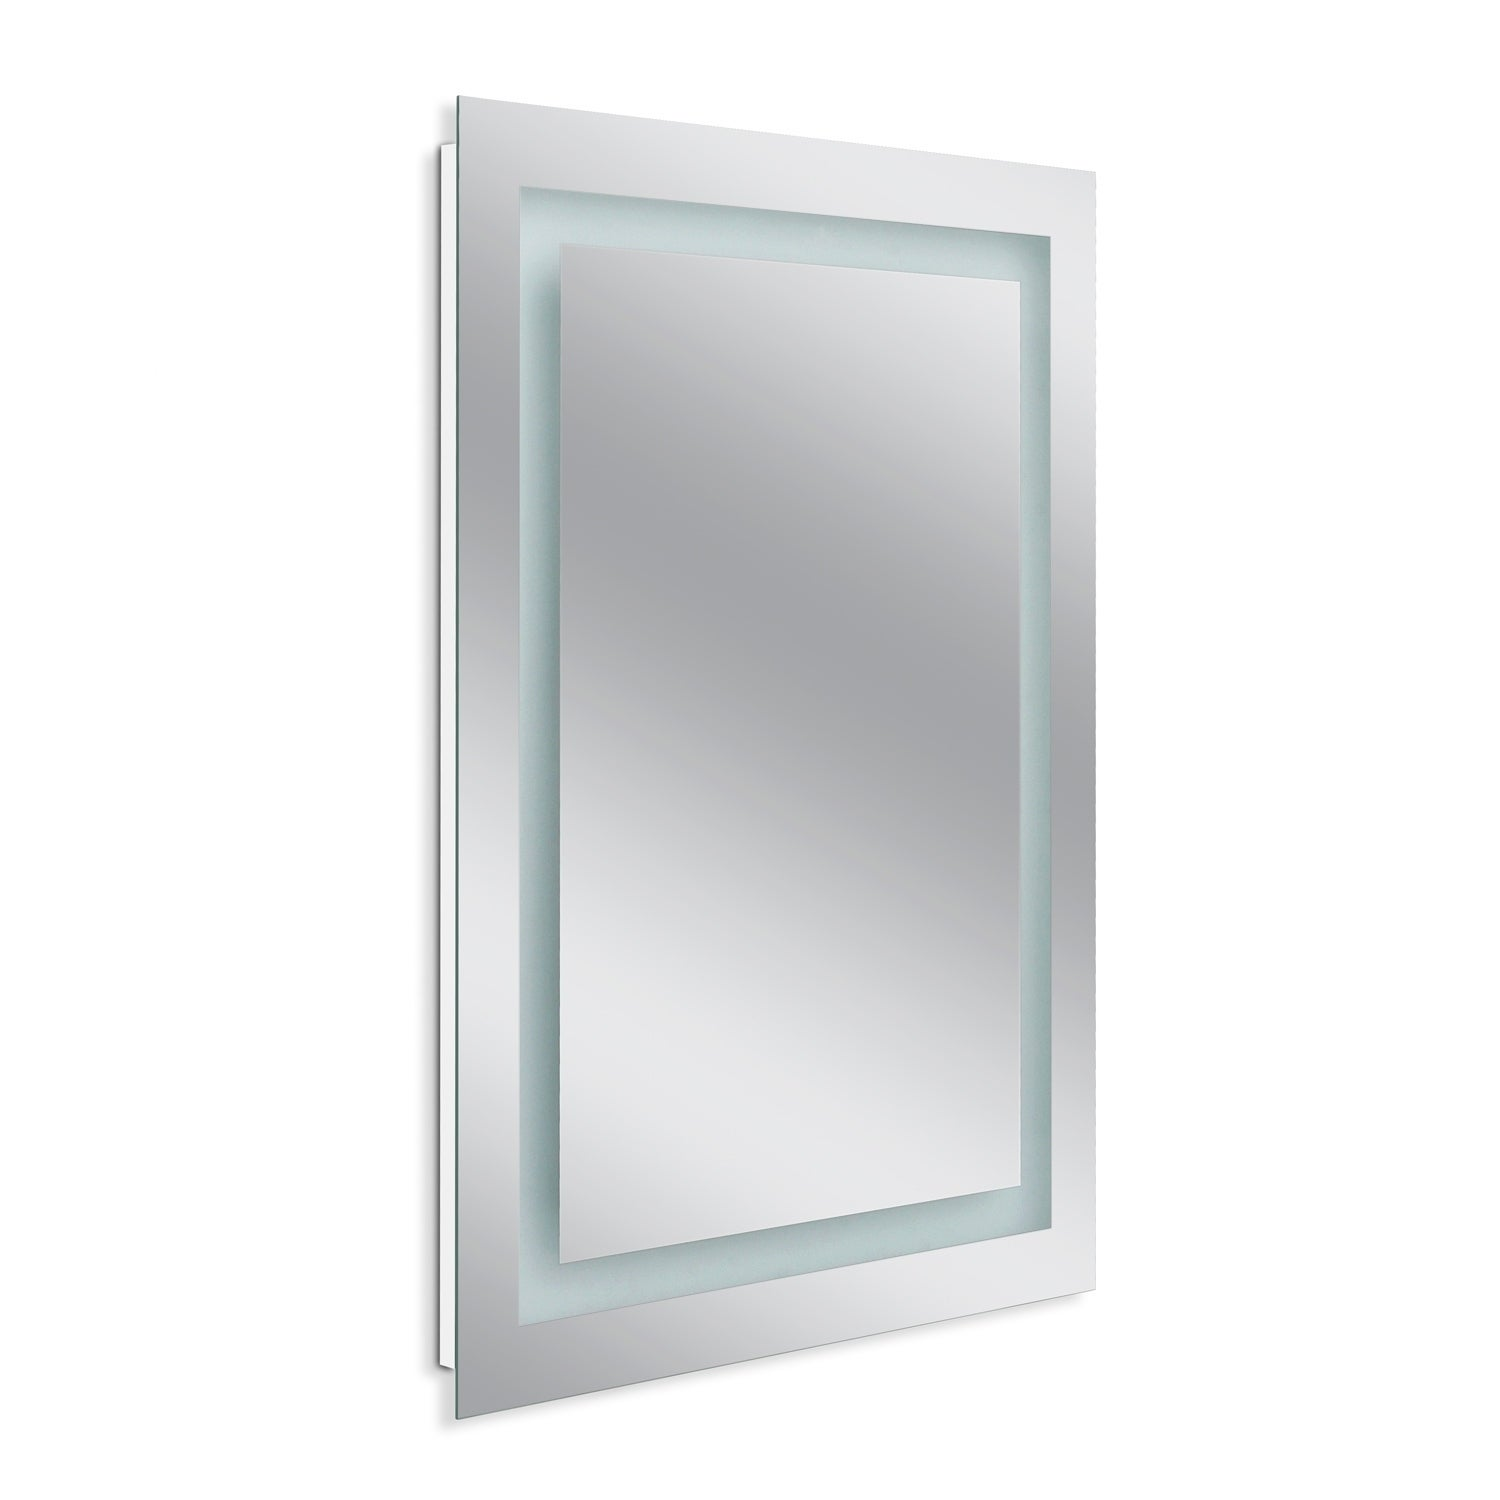 Headwest 24 X 32 Led Rectangle Wall Mirror Frosted